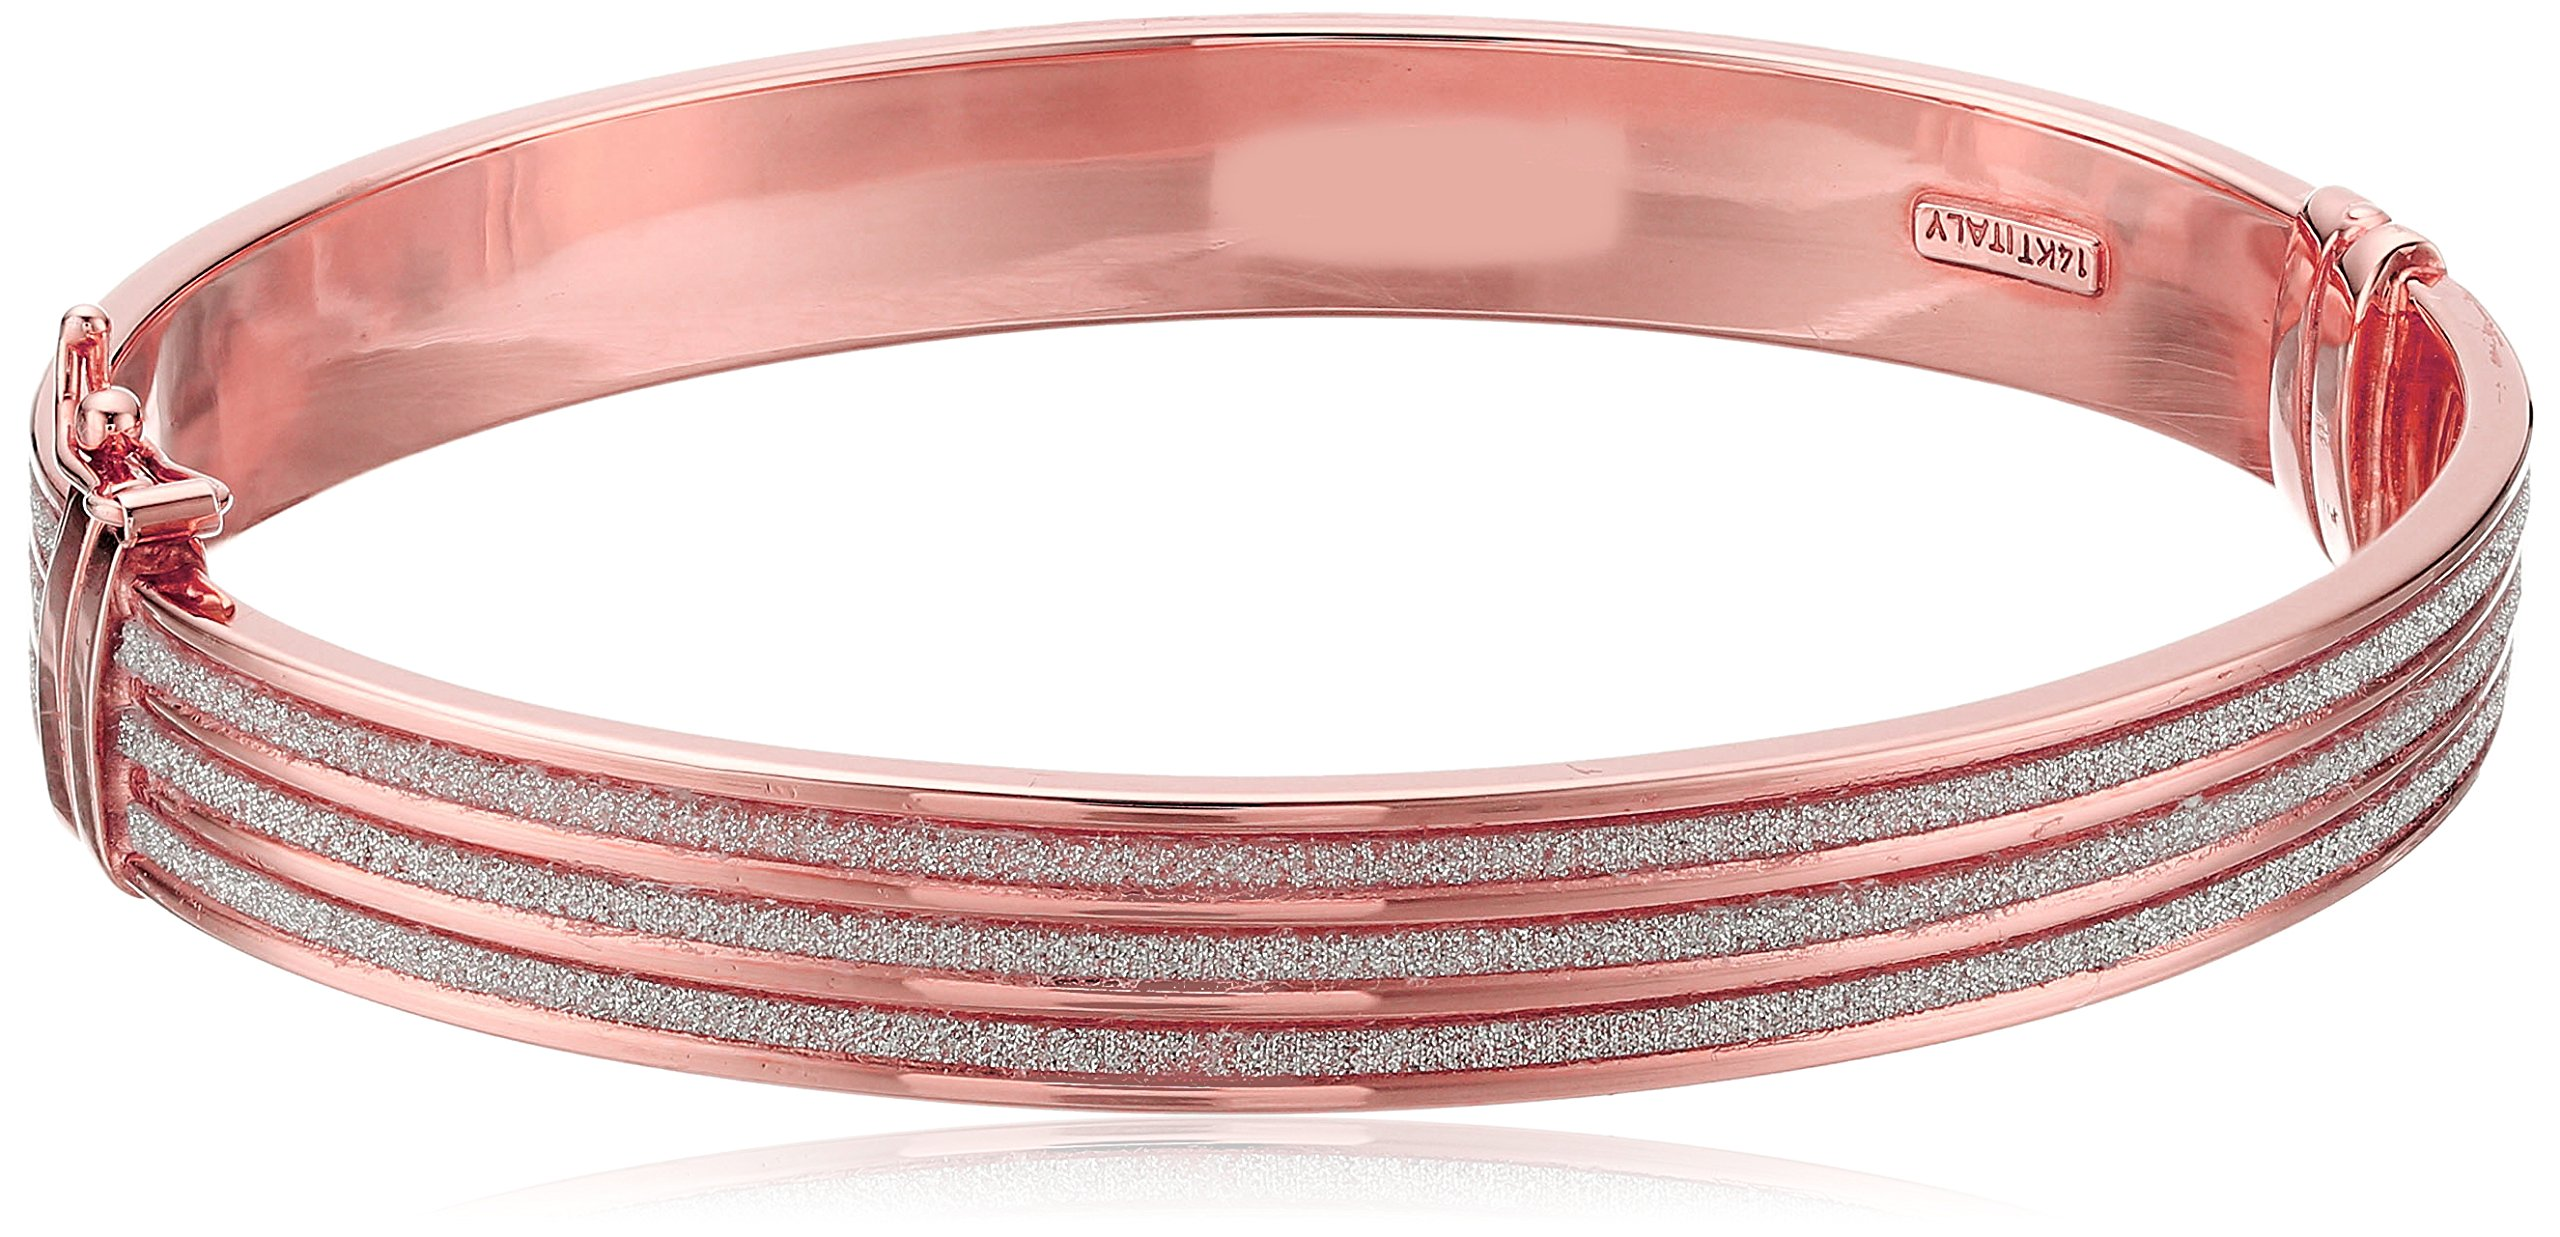 14k Rose Gold Italian 9 mm Tube Hinged with Triple Pave Style Glitter Strips Bangle Bracelet by Amazon Collection